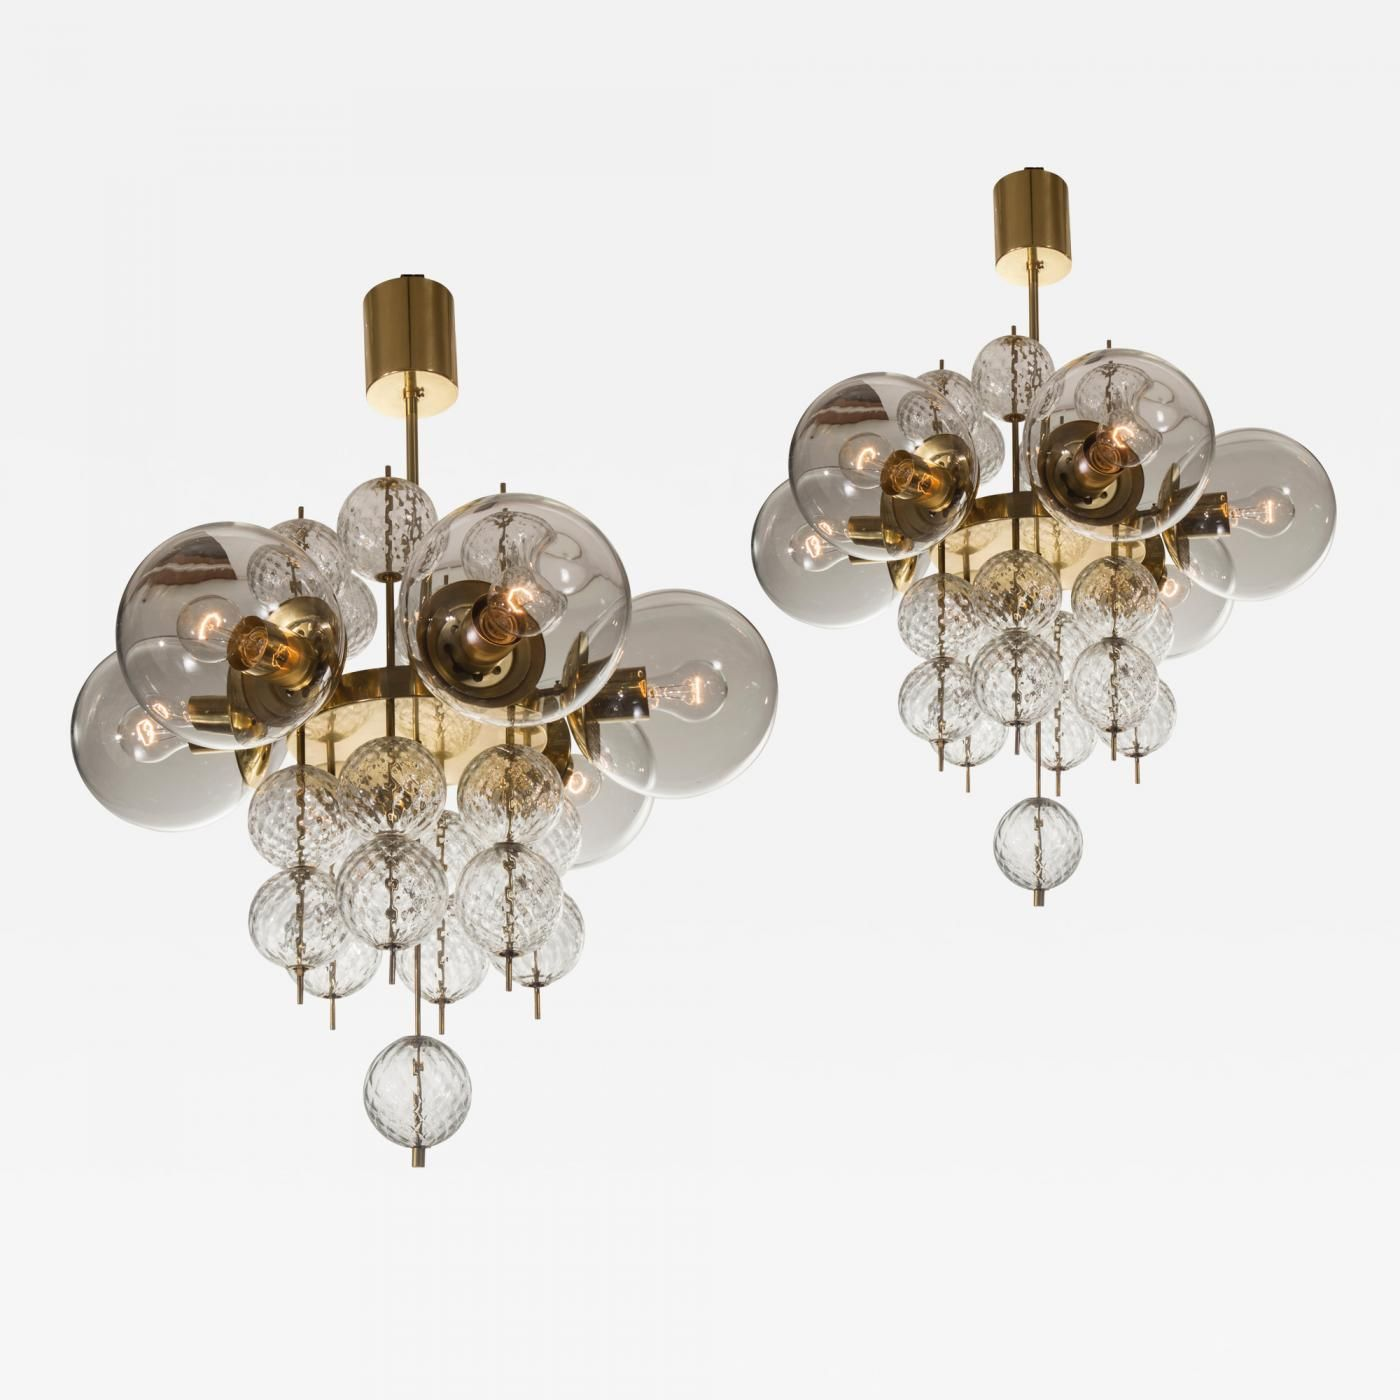 kamenicky senov a pair of czech brass and handblown glass chandeliers offered by